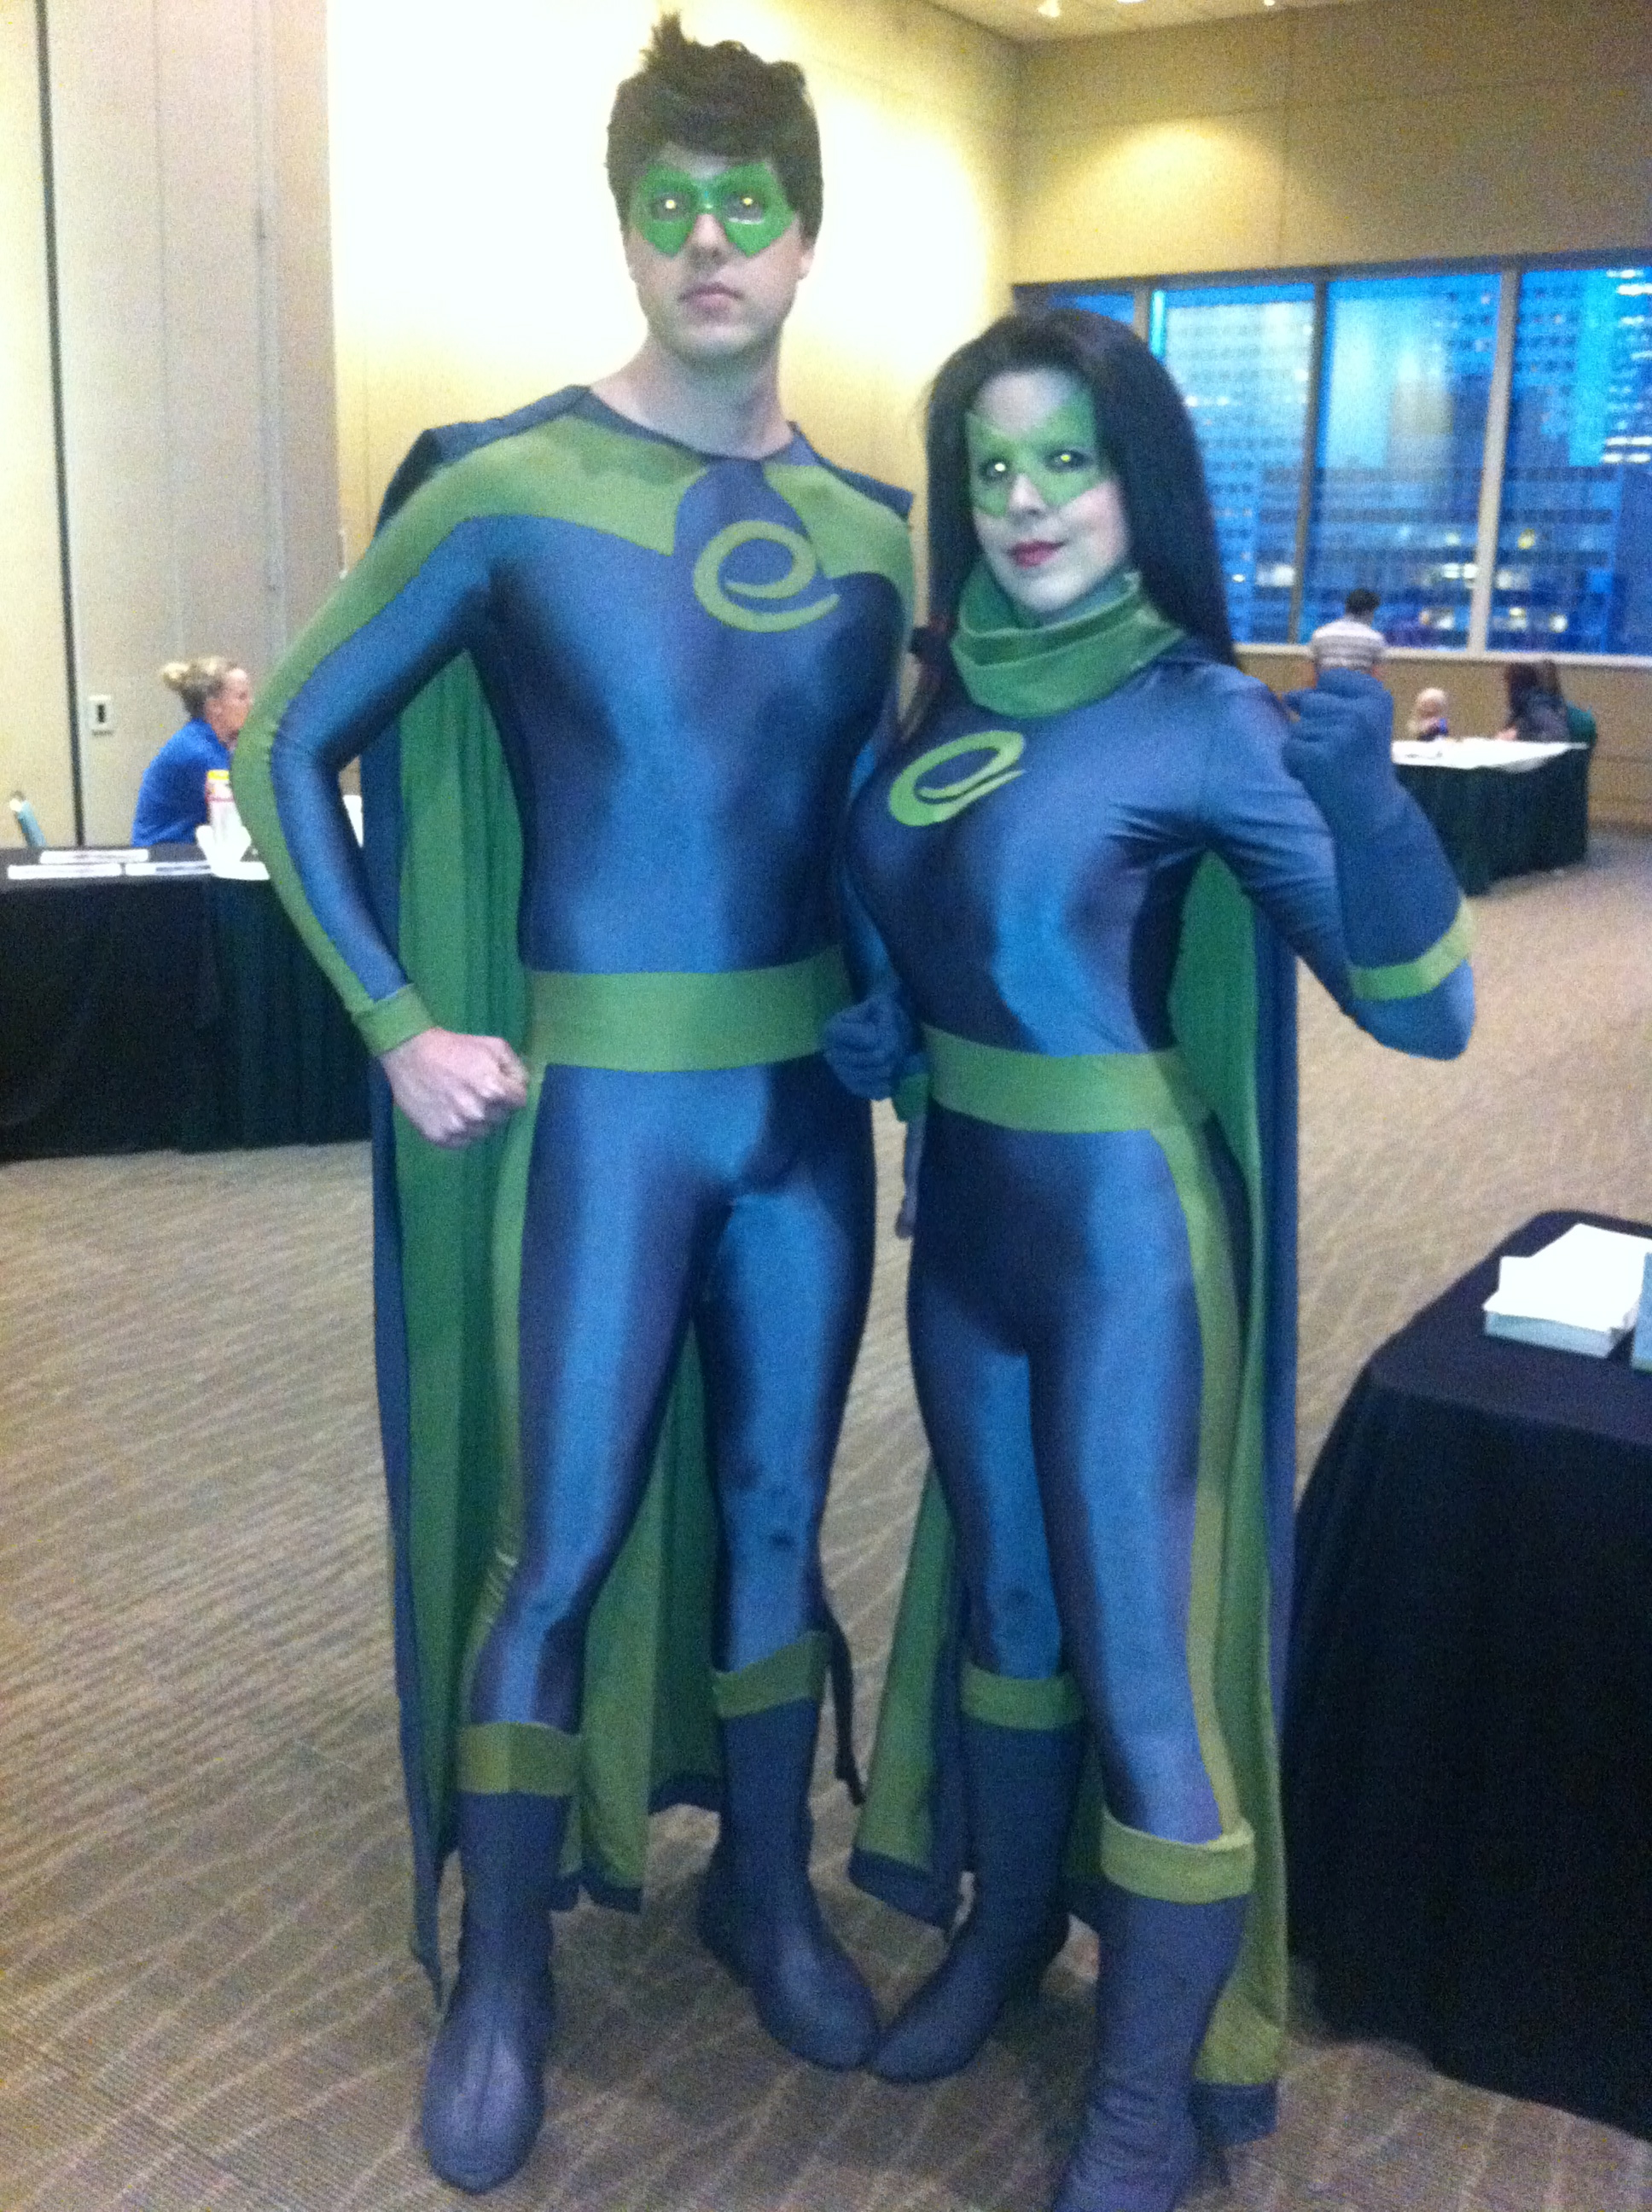 Emerald City ComiCon Mascots